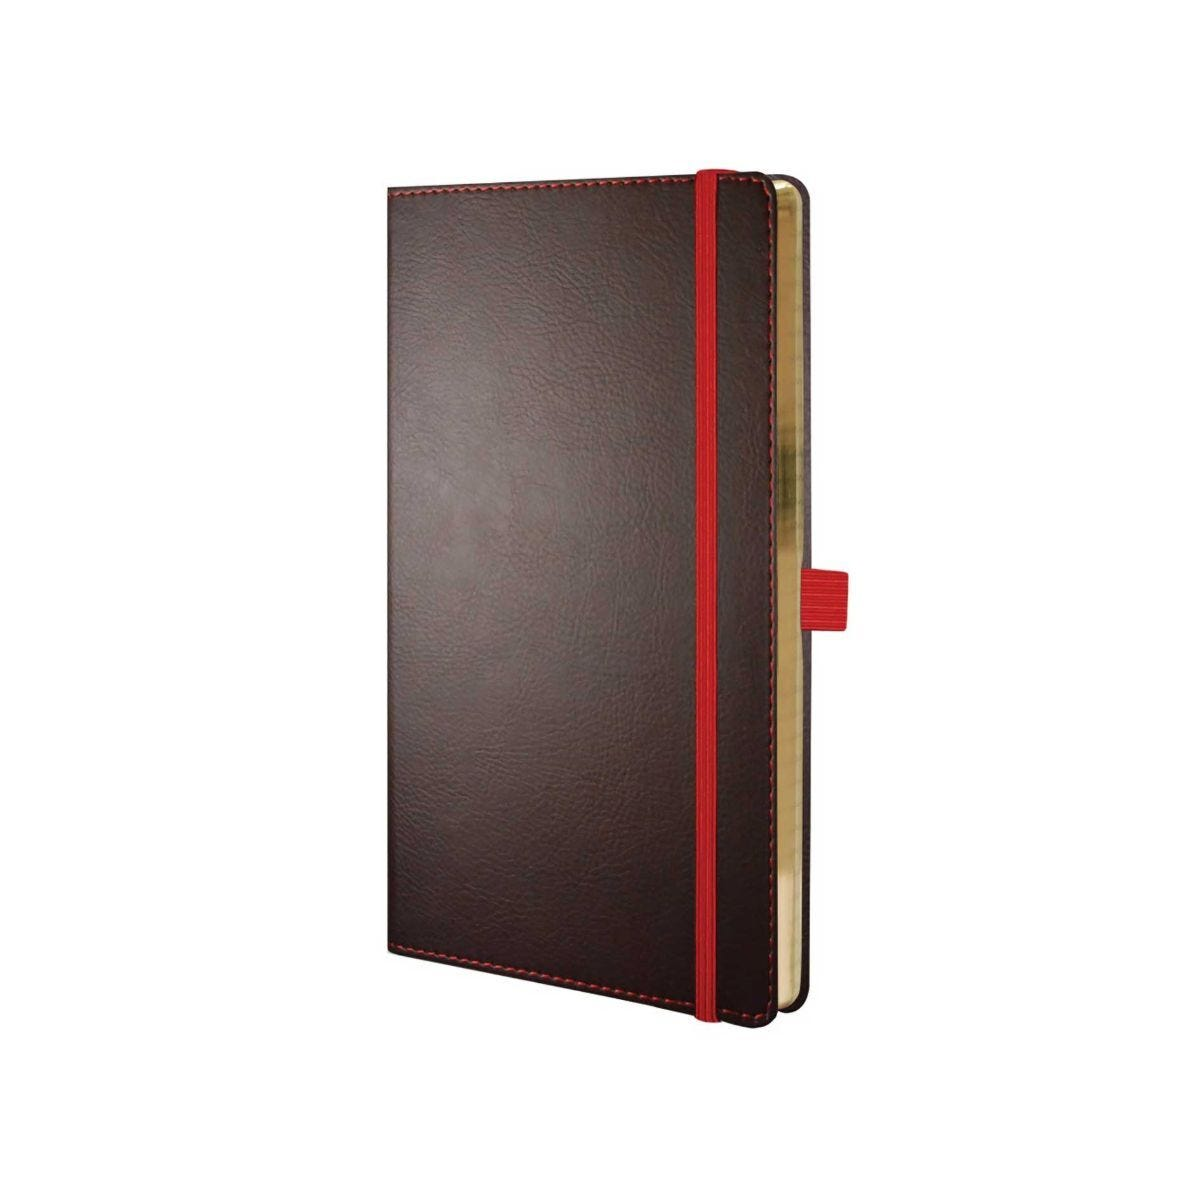 Castelli Ivory Phoenix Notebook Medium Ruled Brown/Red